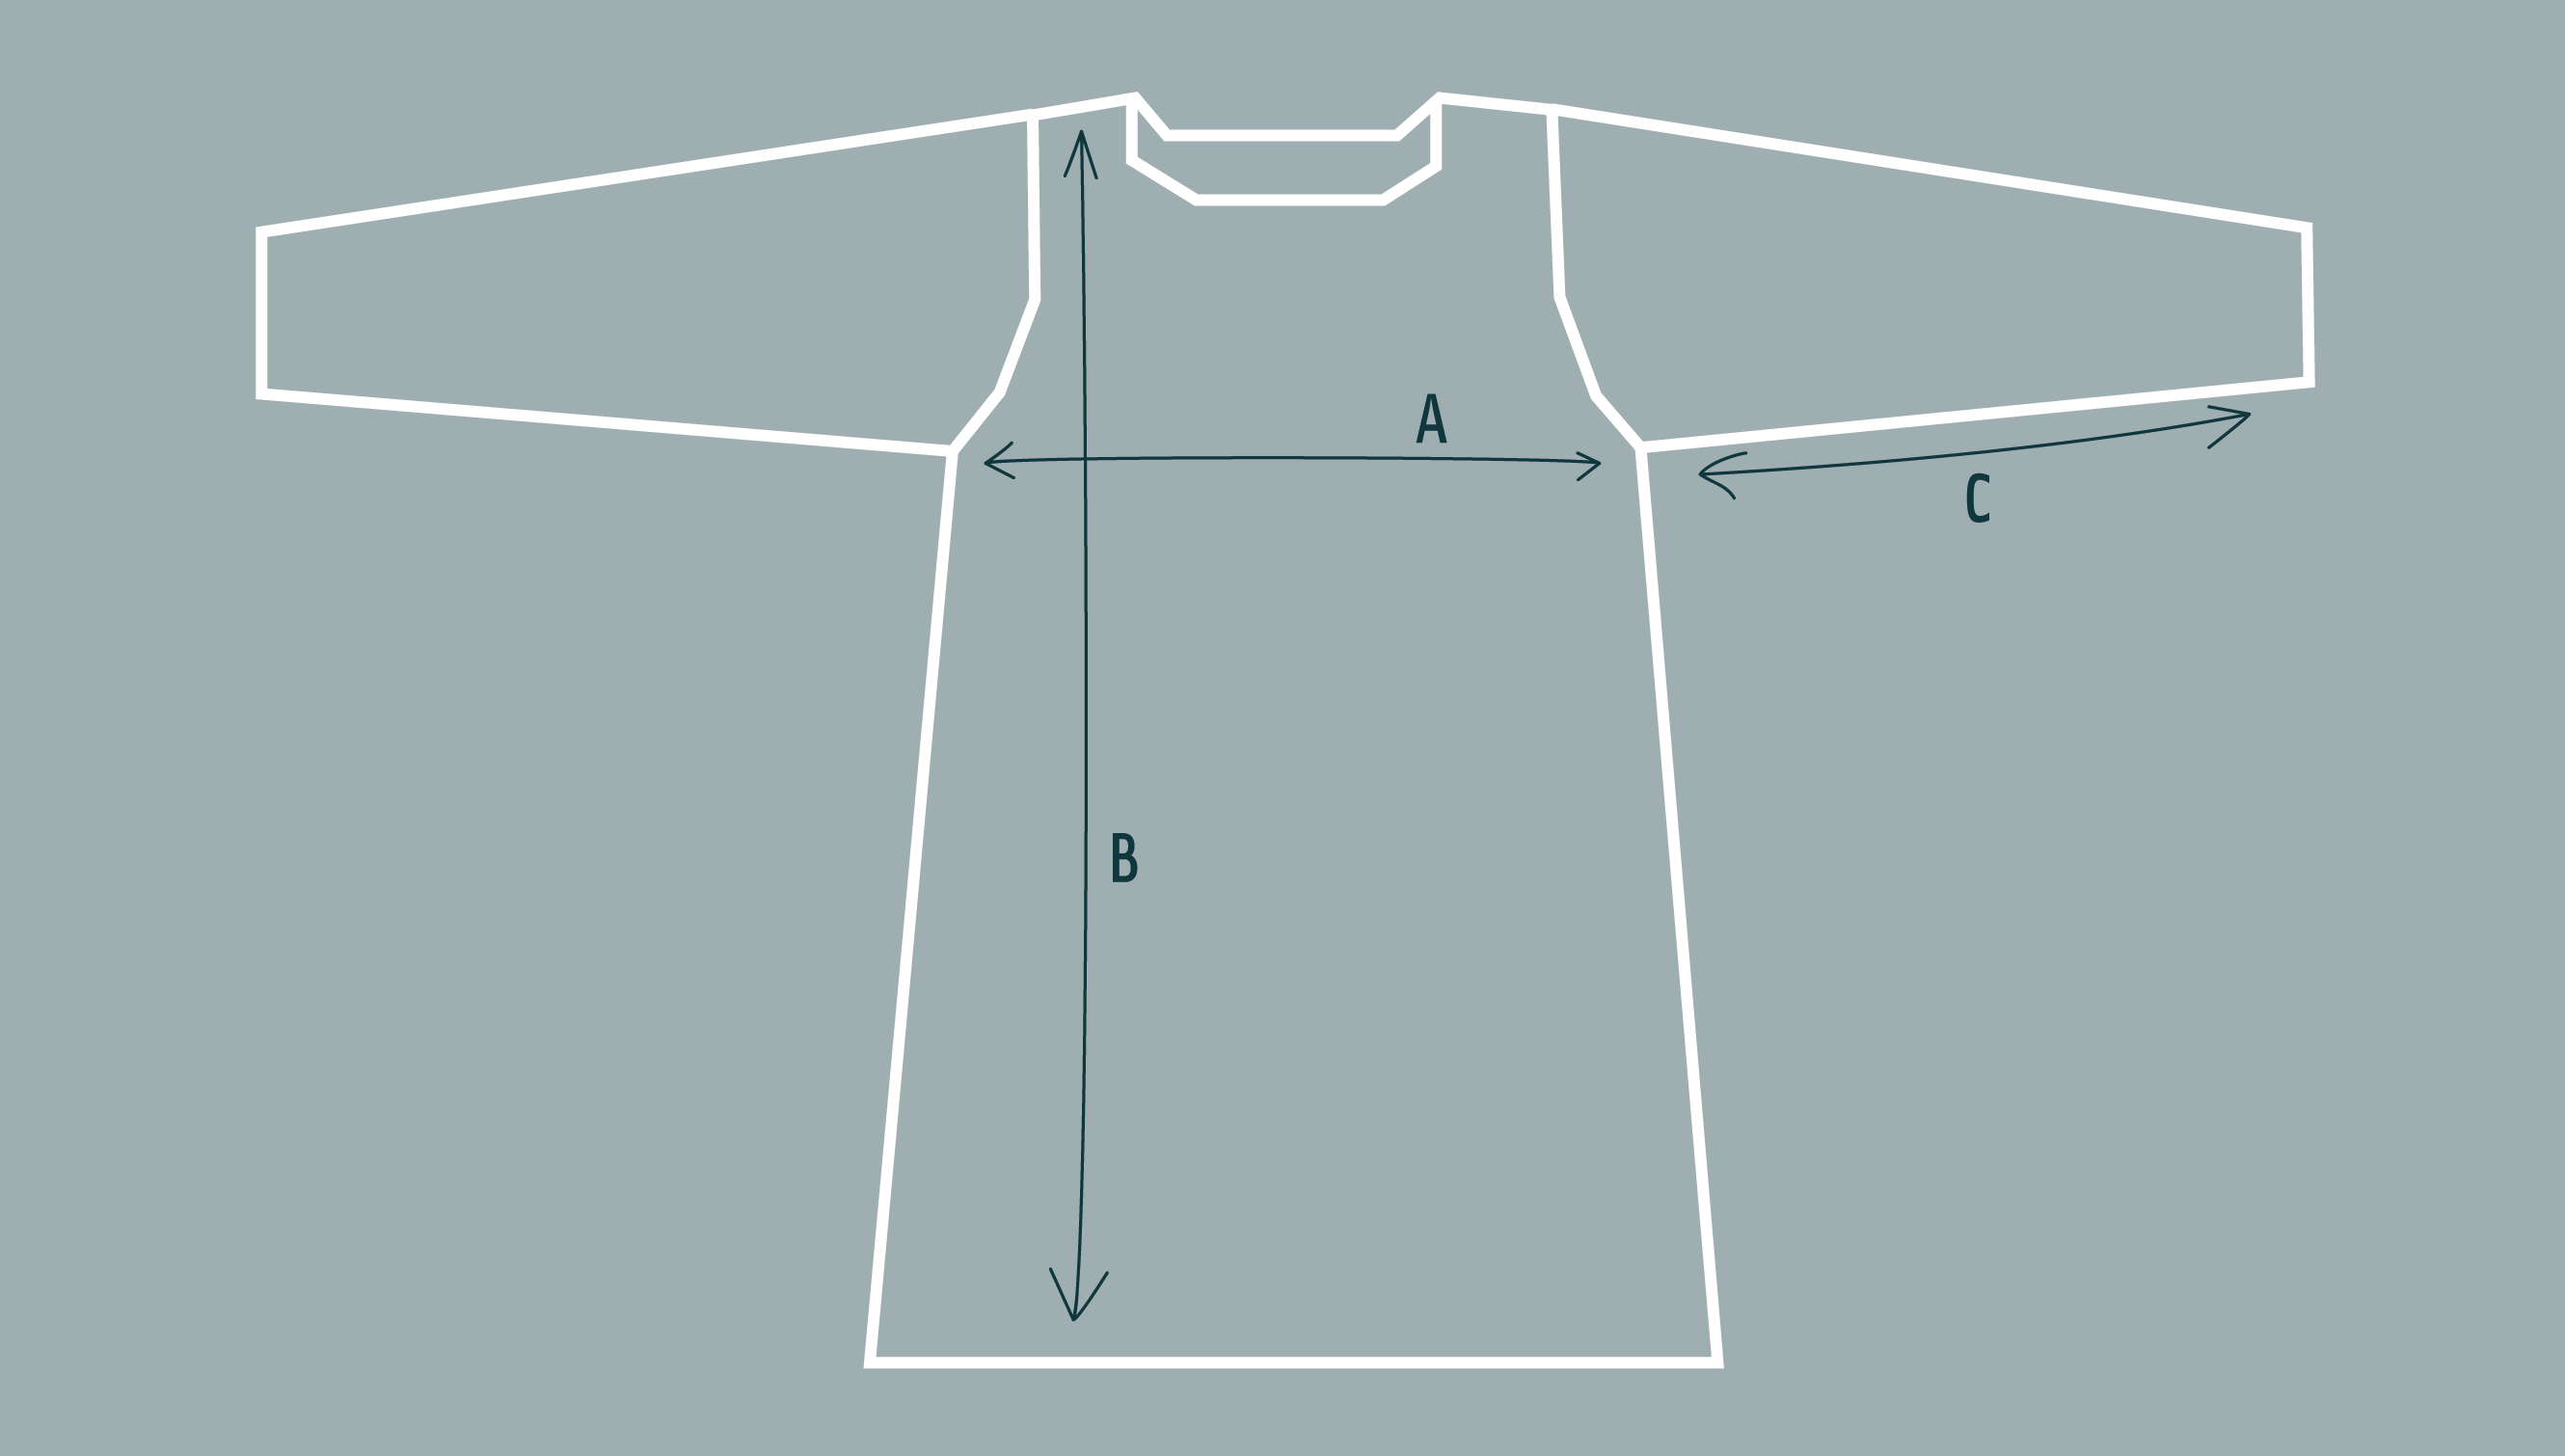 Diagram to illustrate shape and dimensions of tunic